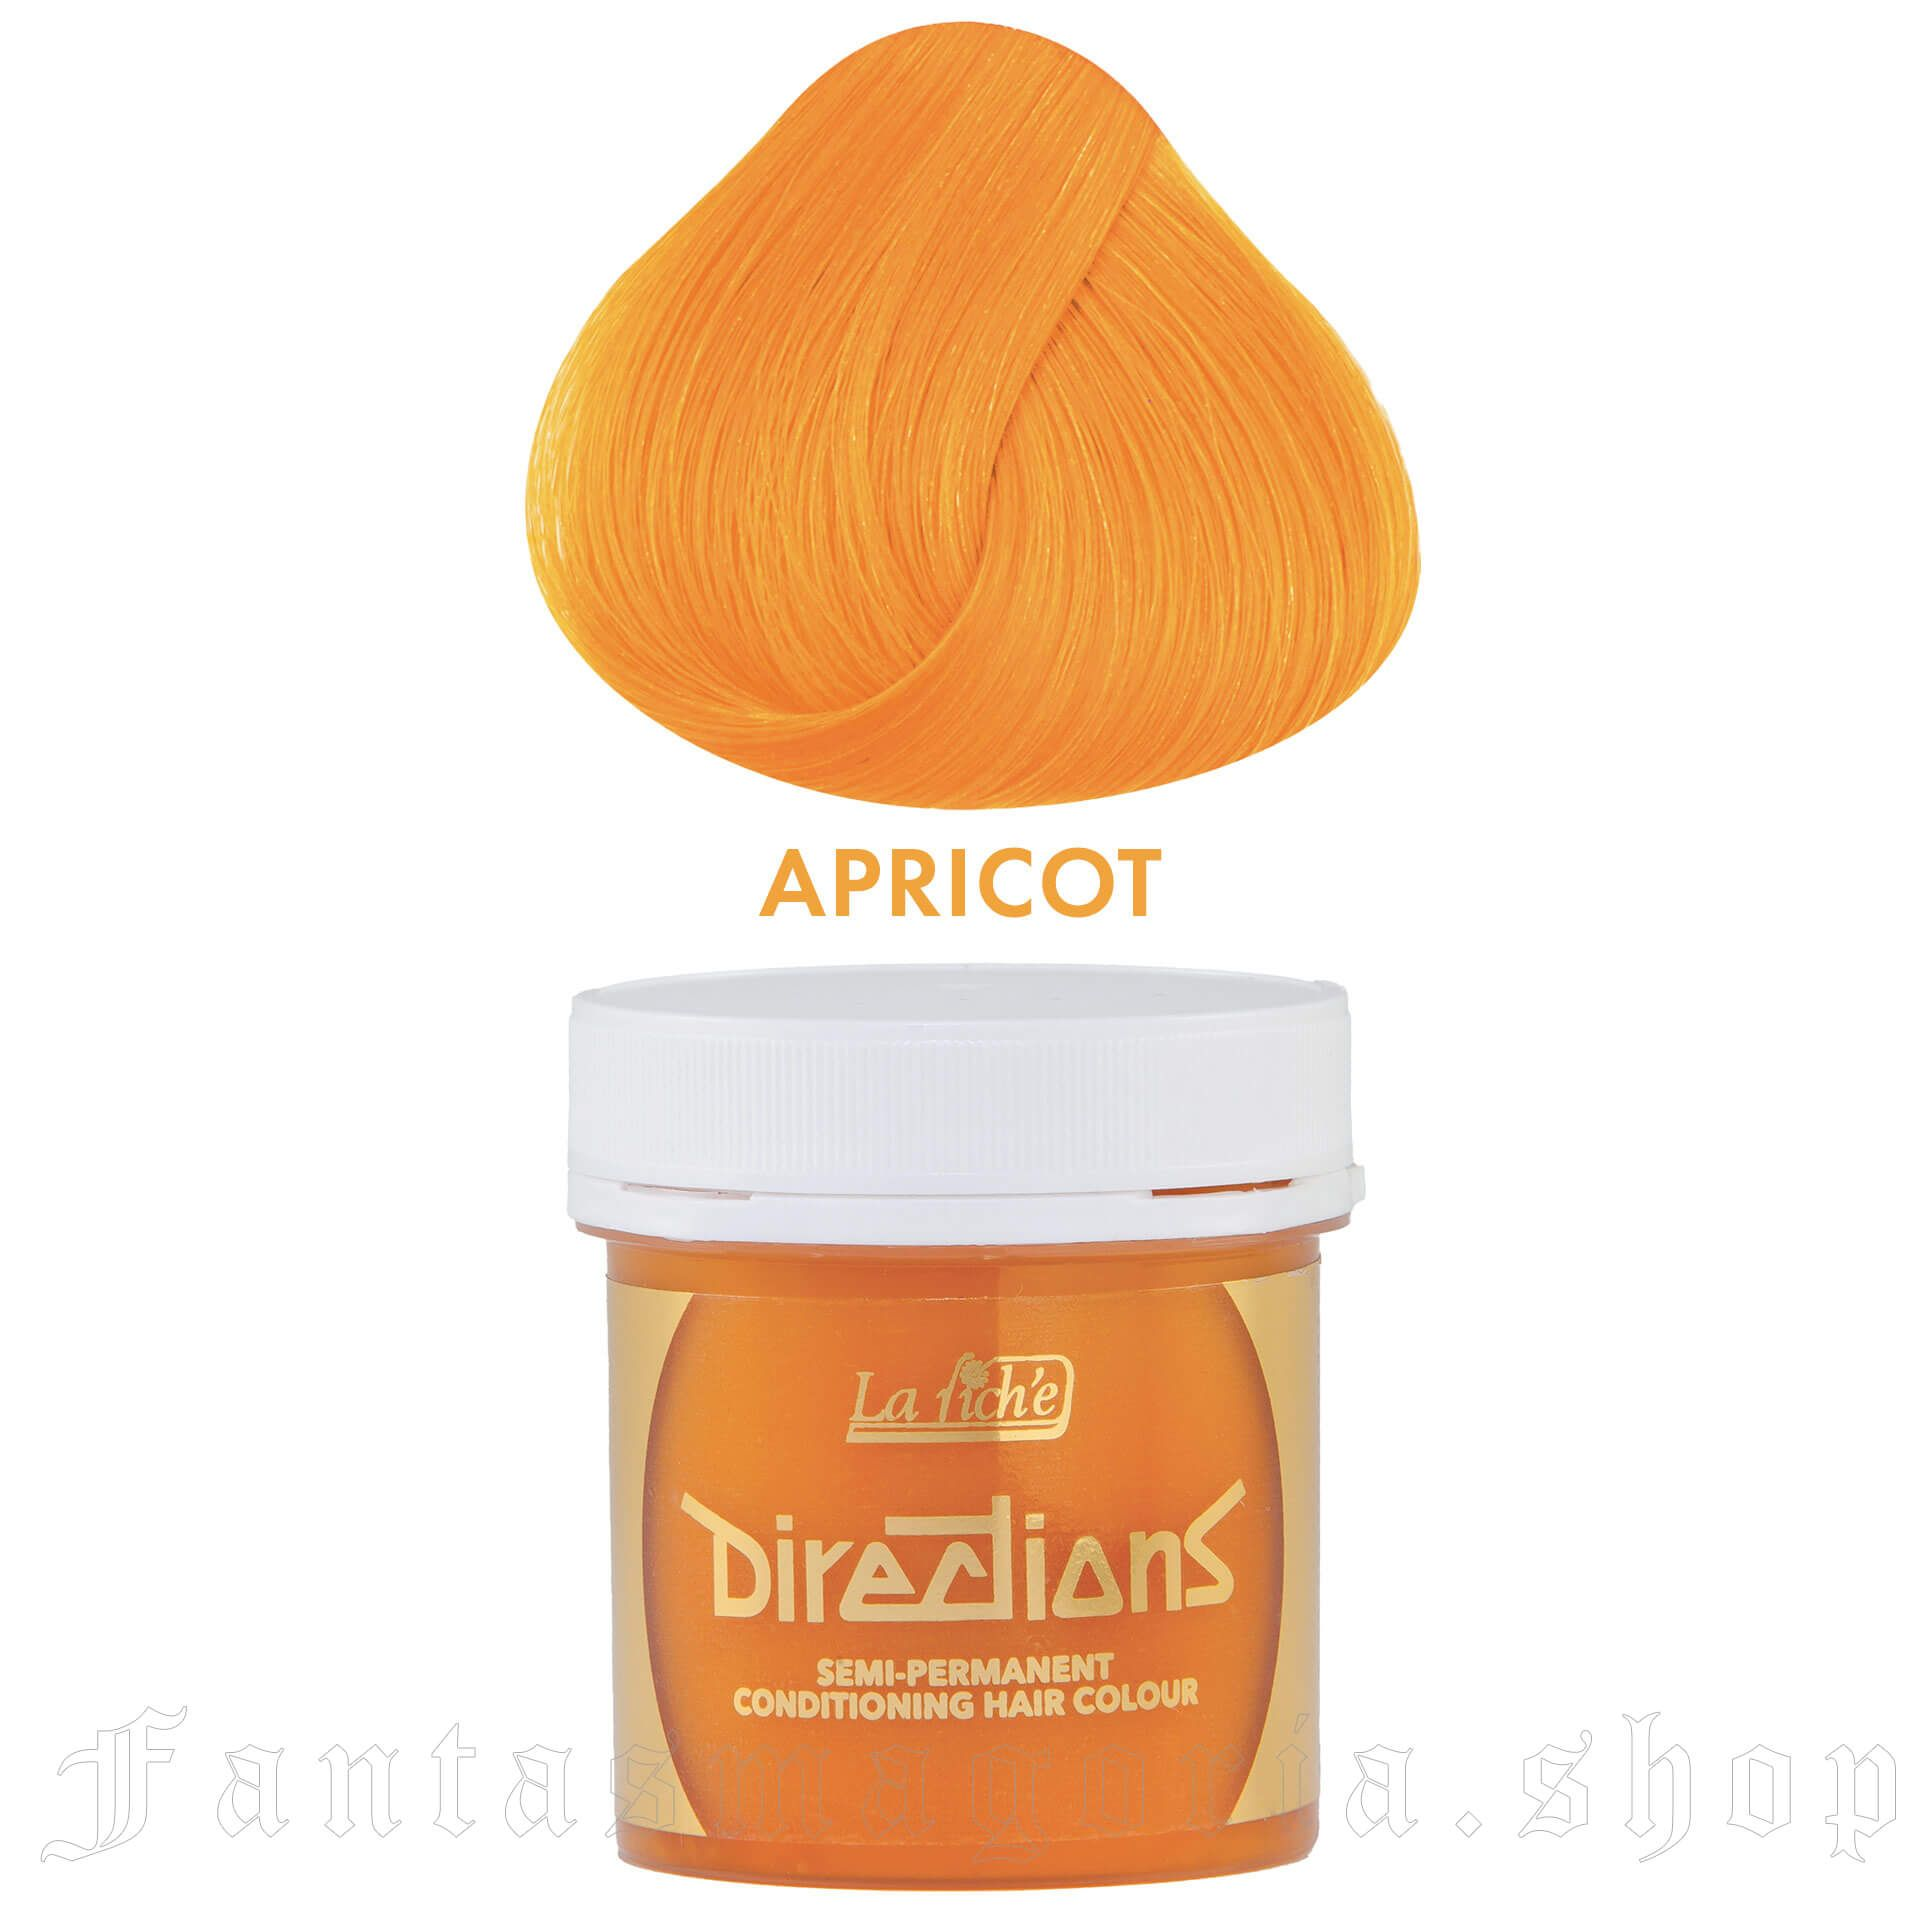 Apricot Hair Coloring Balsam